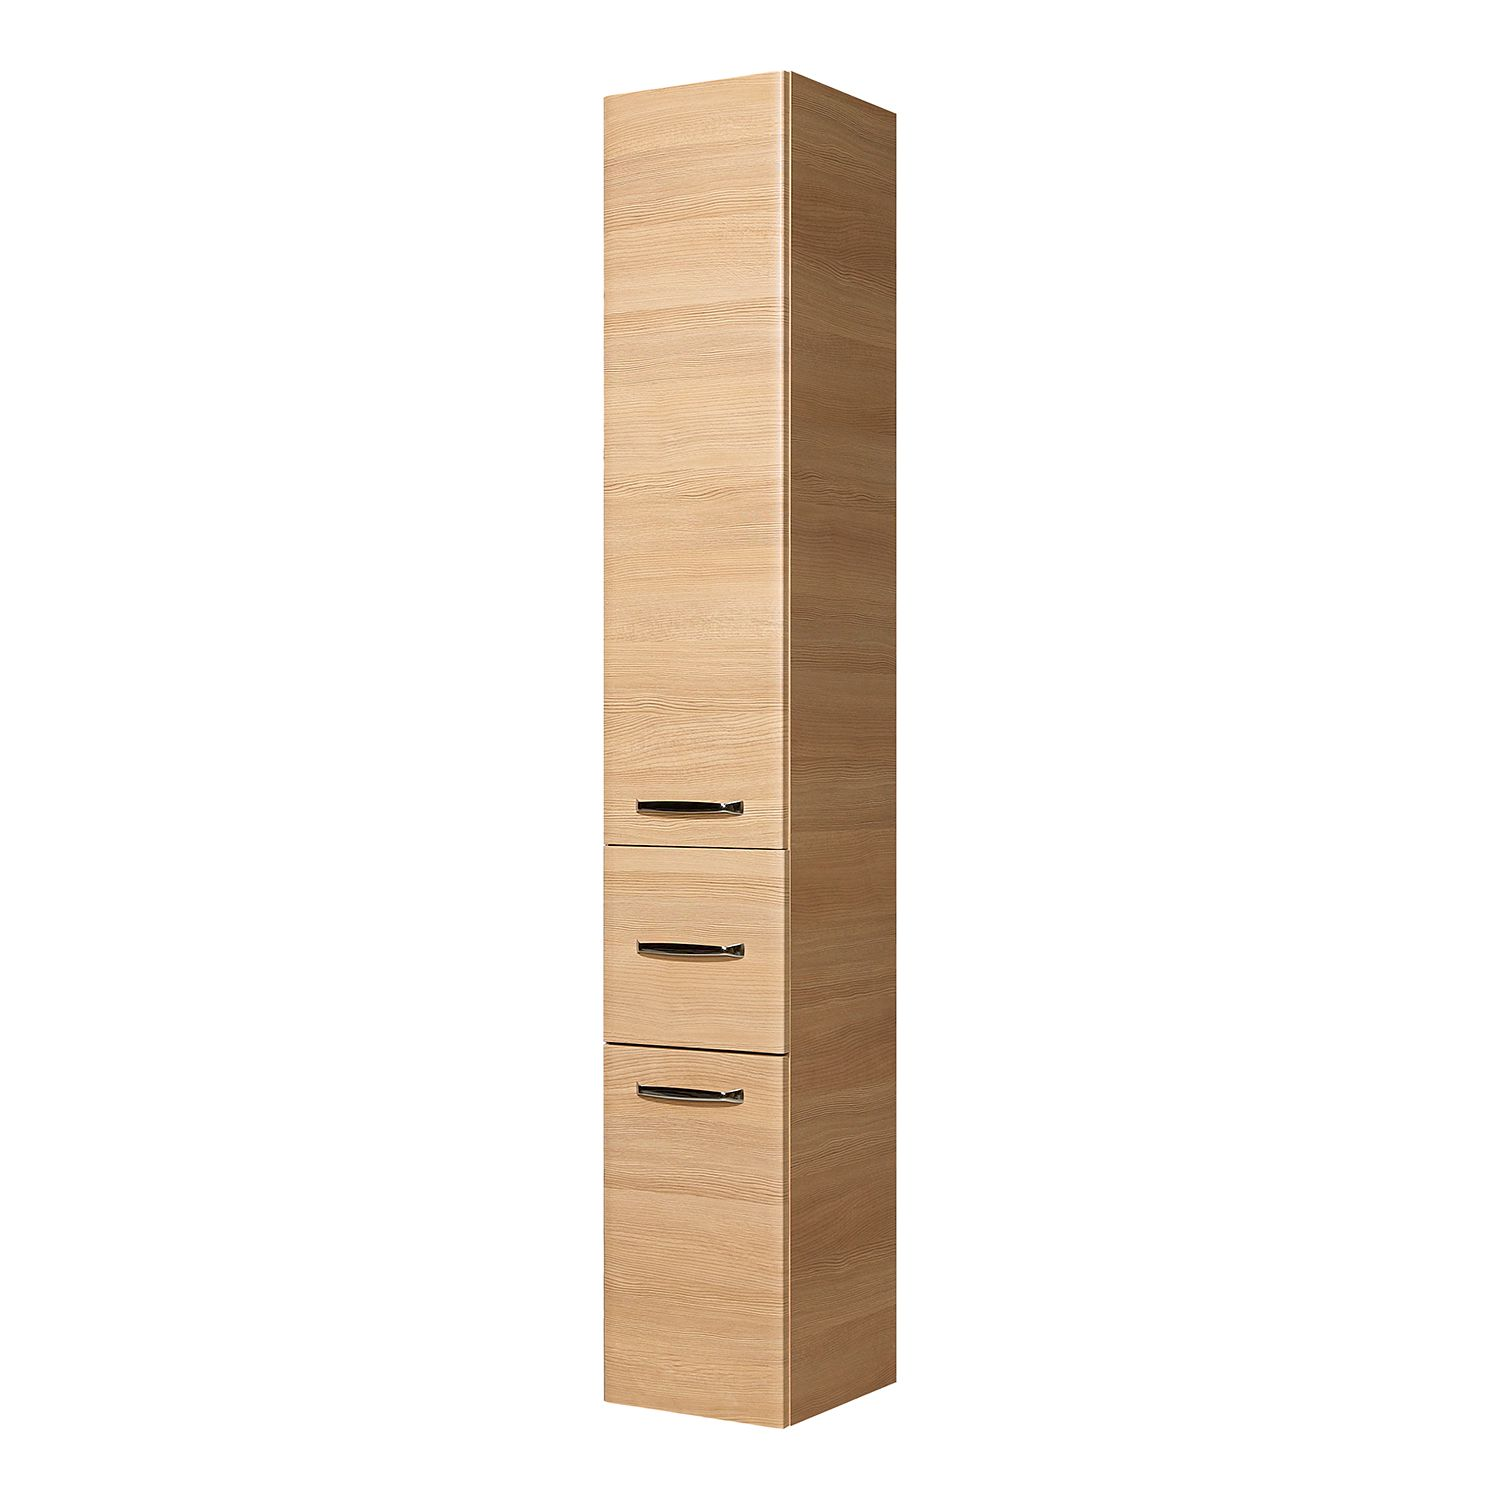 schrank 30 cm breit pelipal preisvergleiche erfahrungsberichte und kauf bei nextag. Black Bedroom Furniture Sets. Home Design Ideas